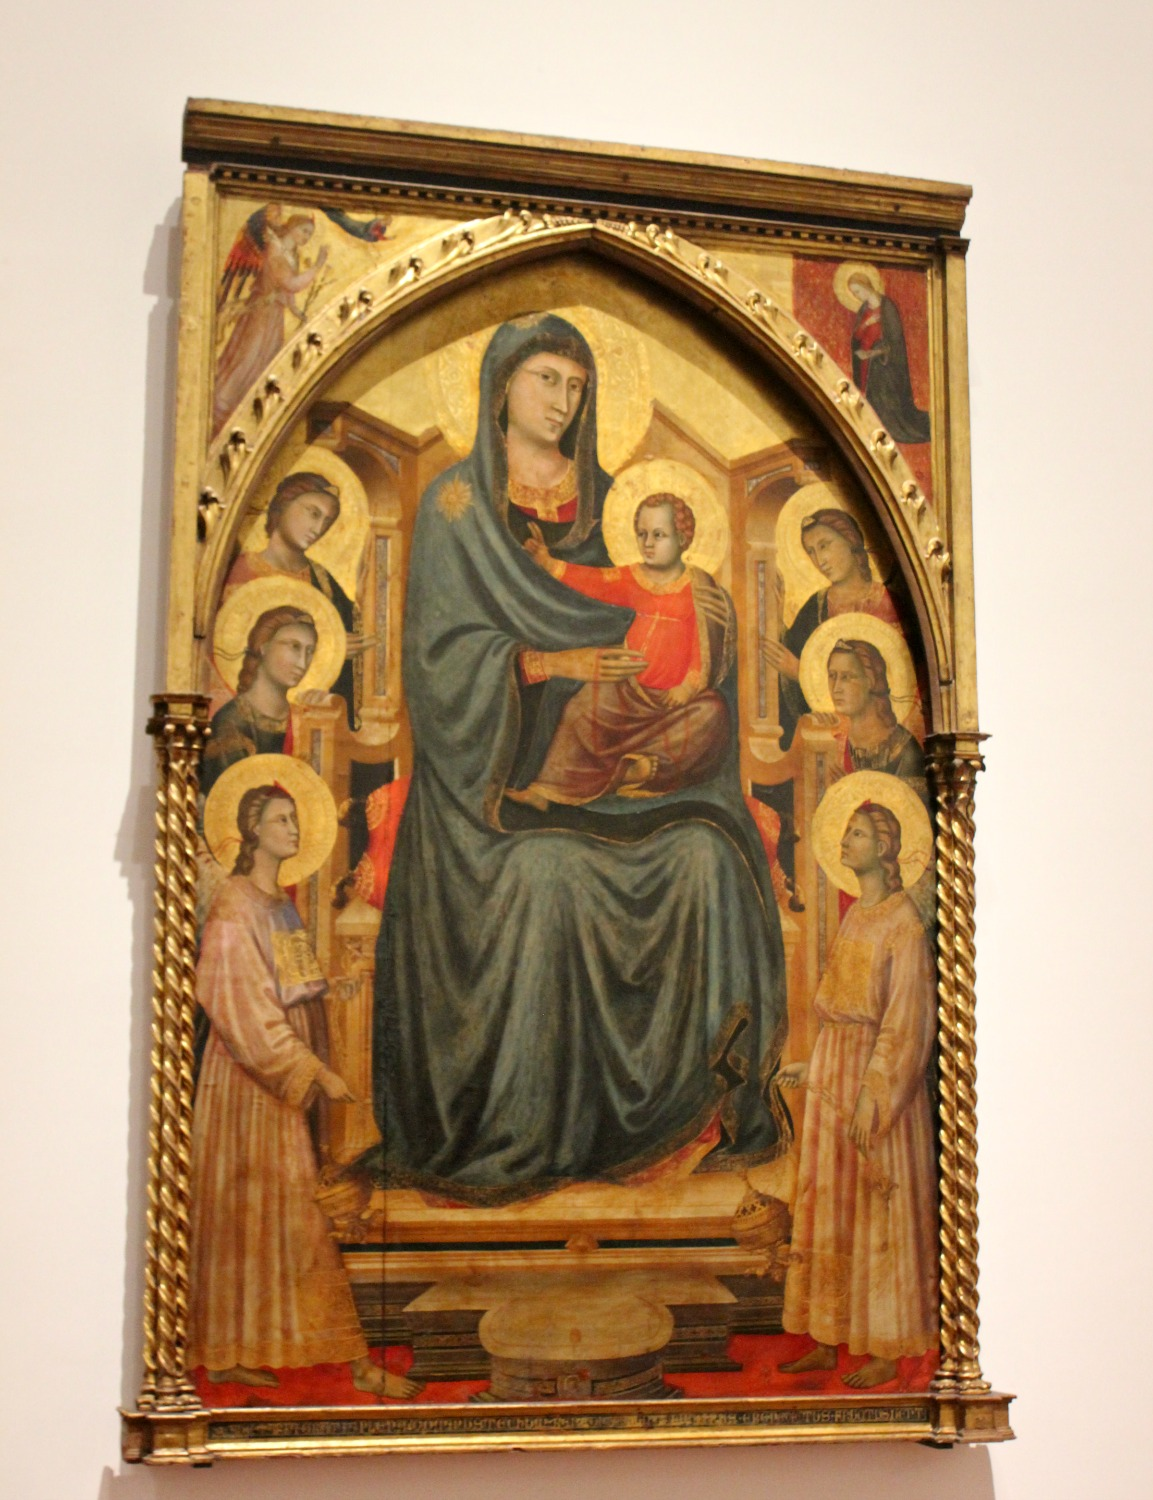 Gilded religious artwork of a Madonna and child at the Uffizi gallery in Florence, Italy